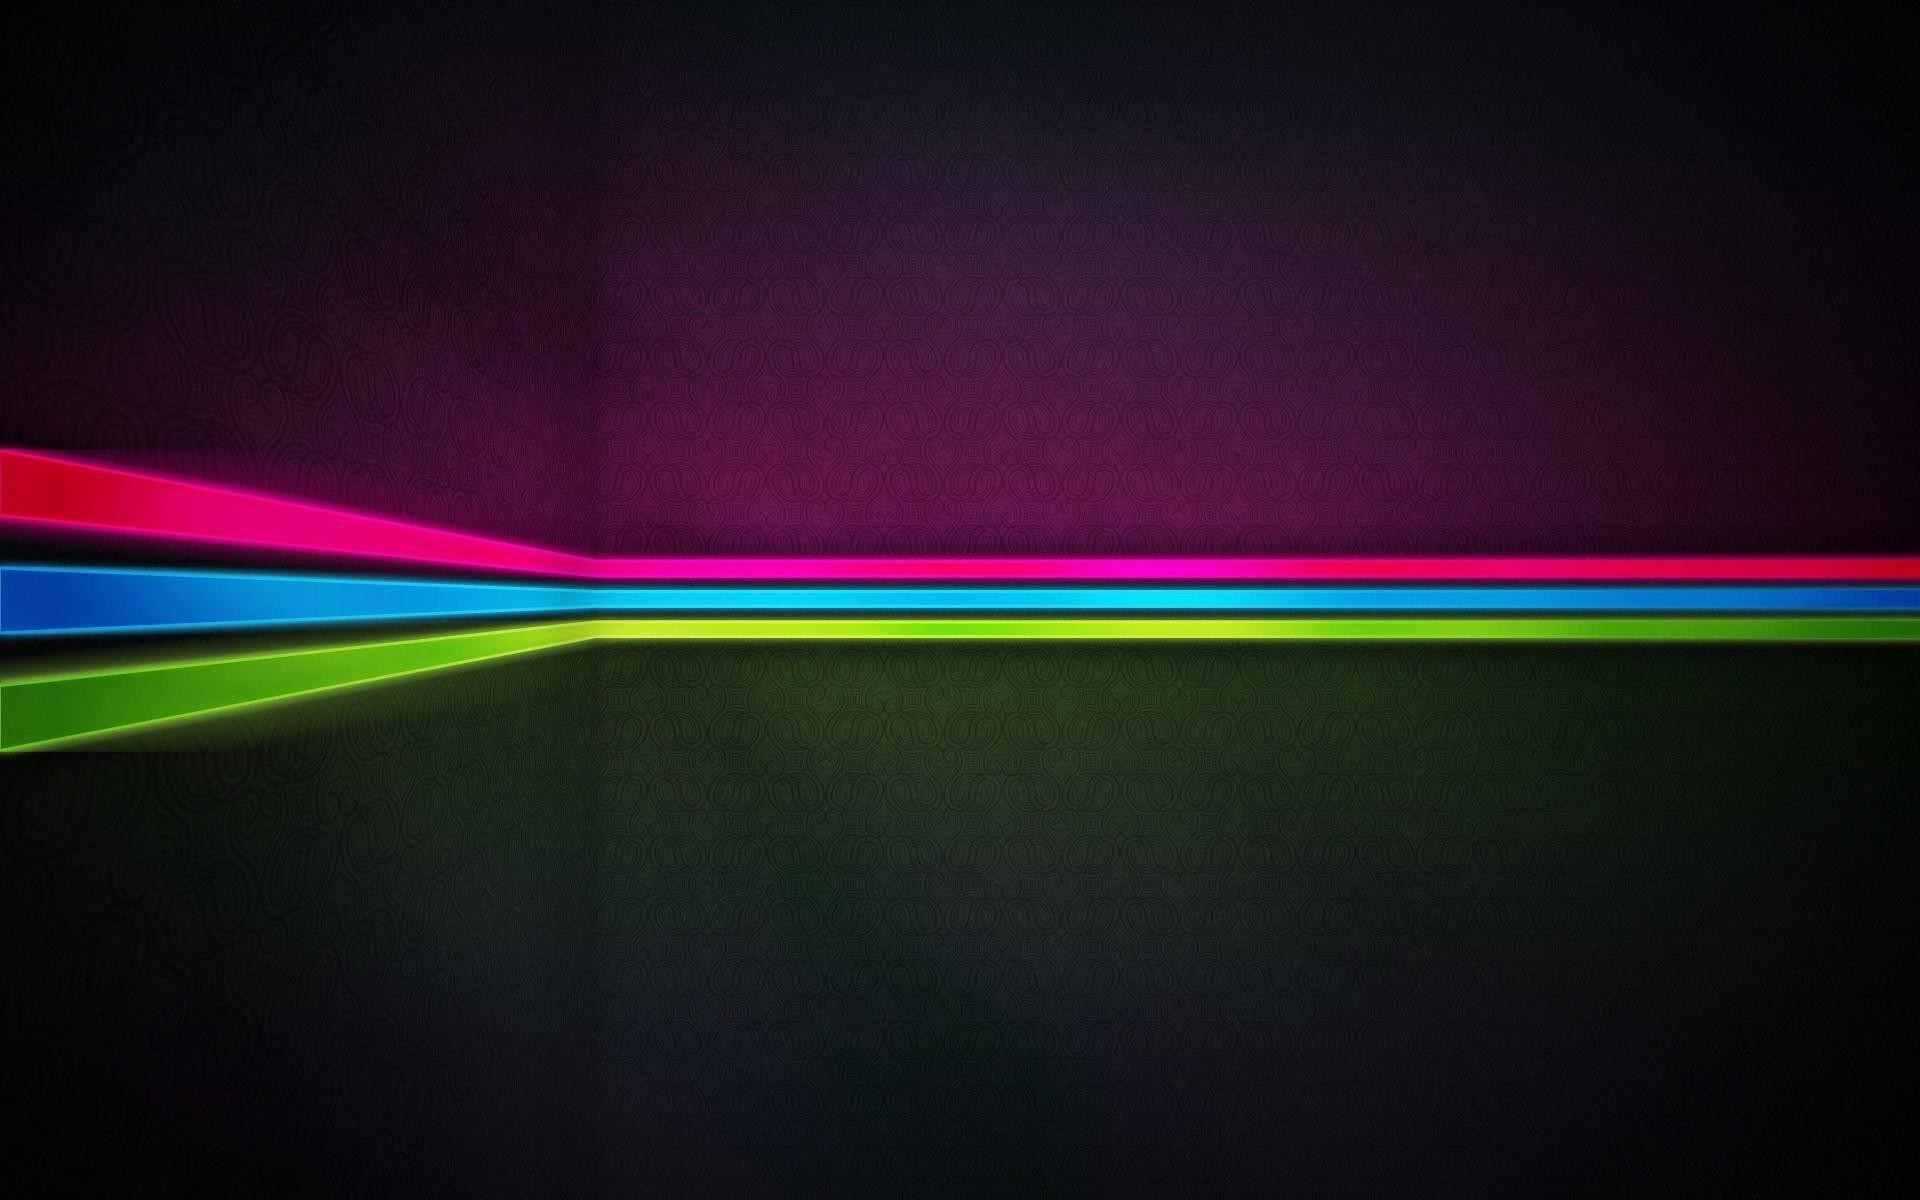 Neon stripes wallpaper Wallpaper Wide HD 1920x1200